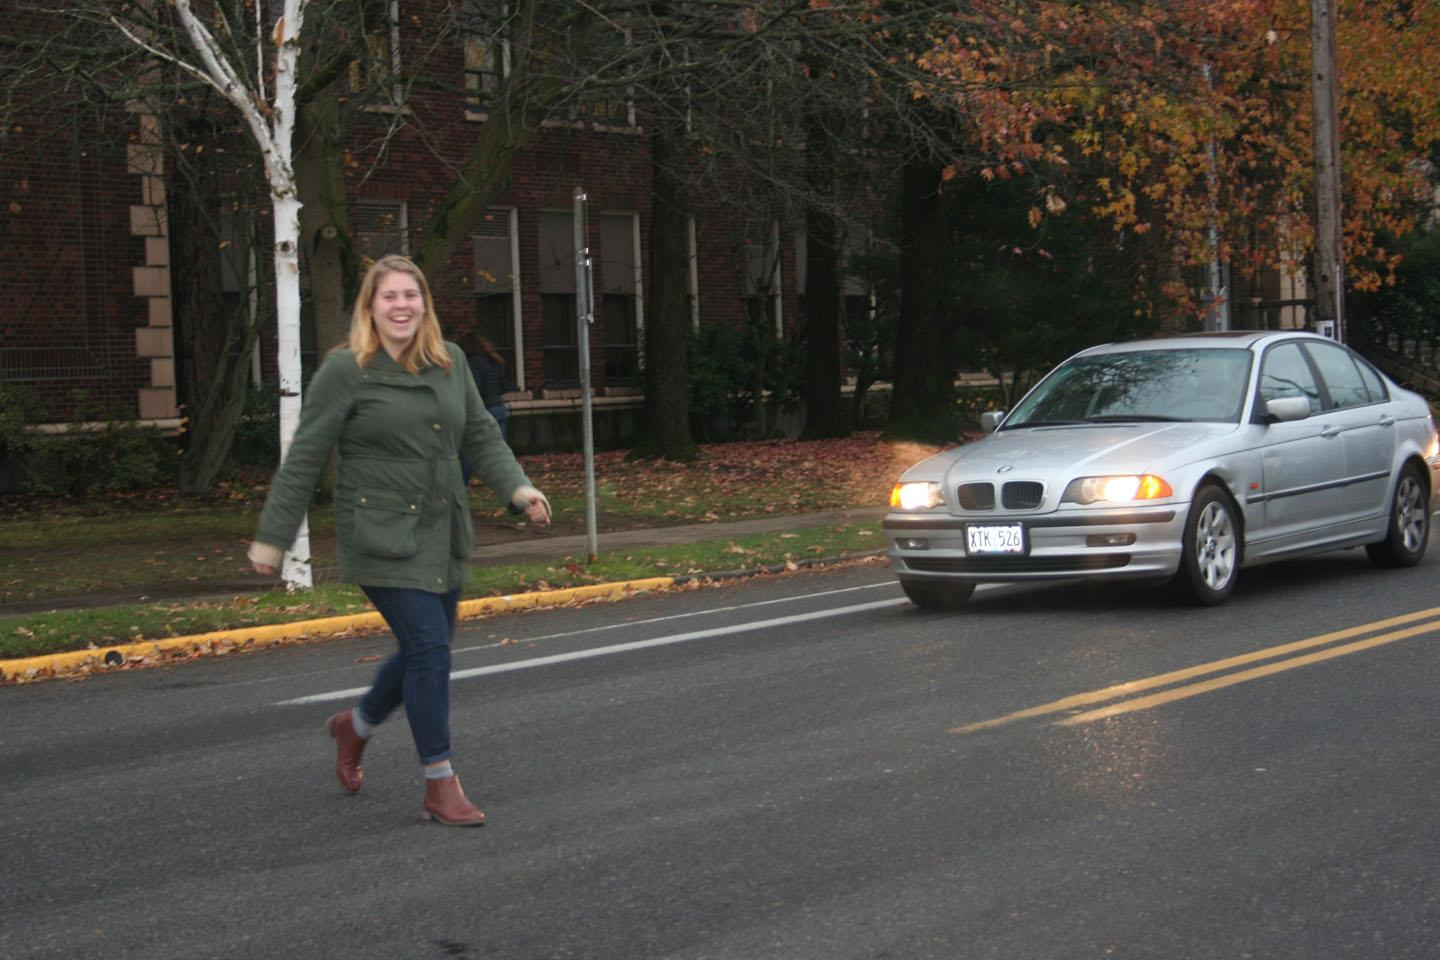 A student crosses the street at the location of the proposed sidewalk